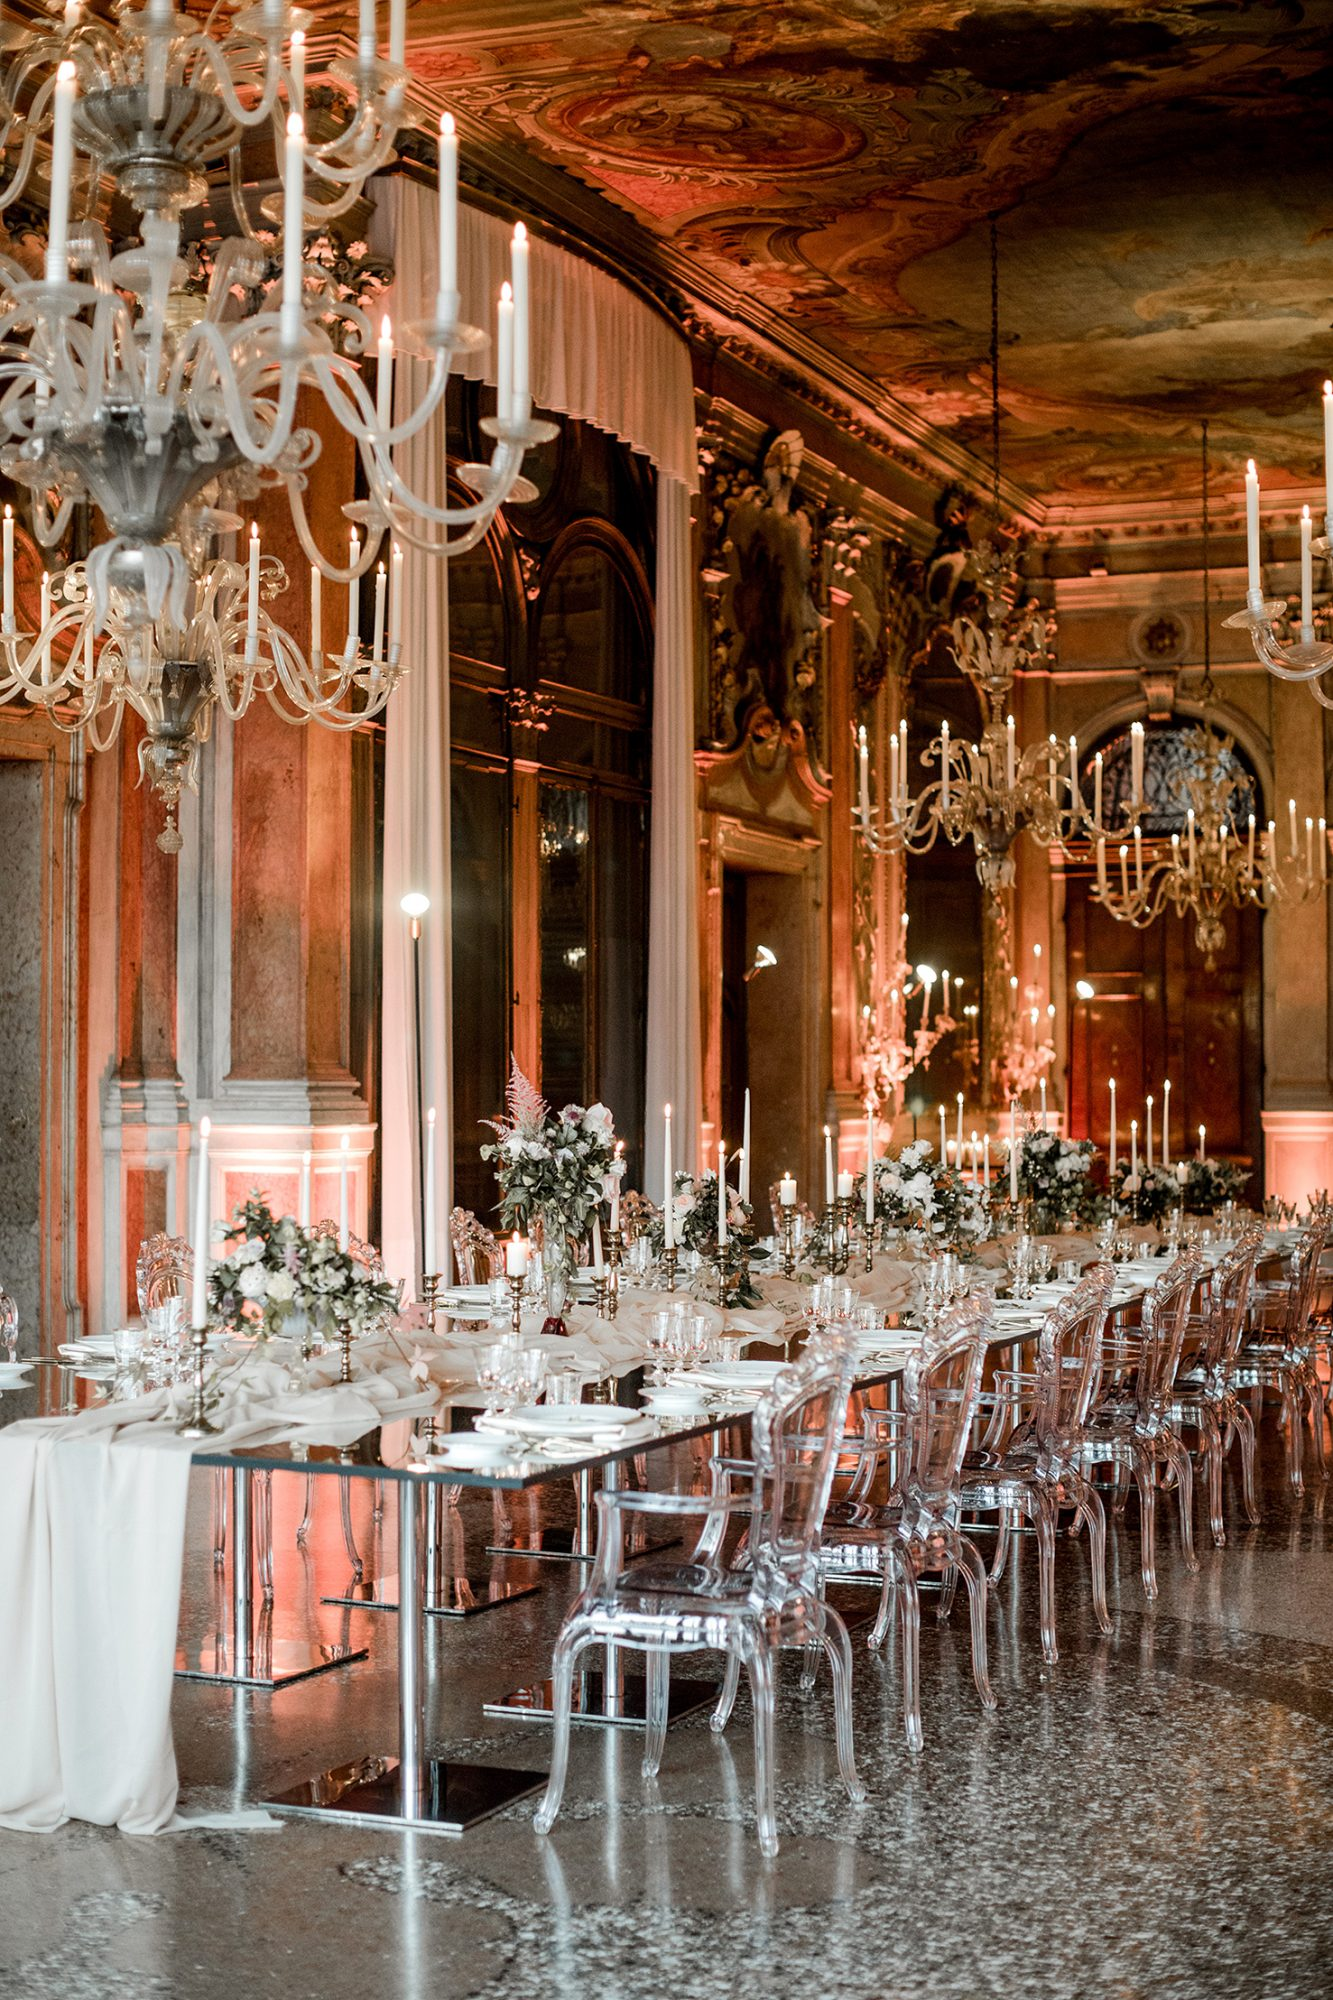 elle raymond venice wedding banquet tables chandeliers